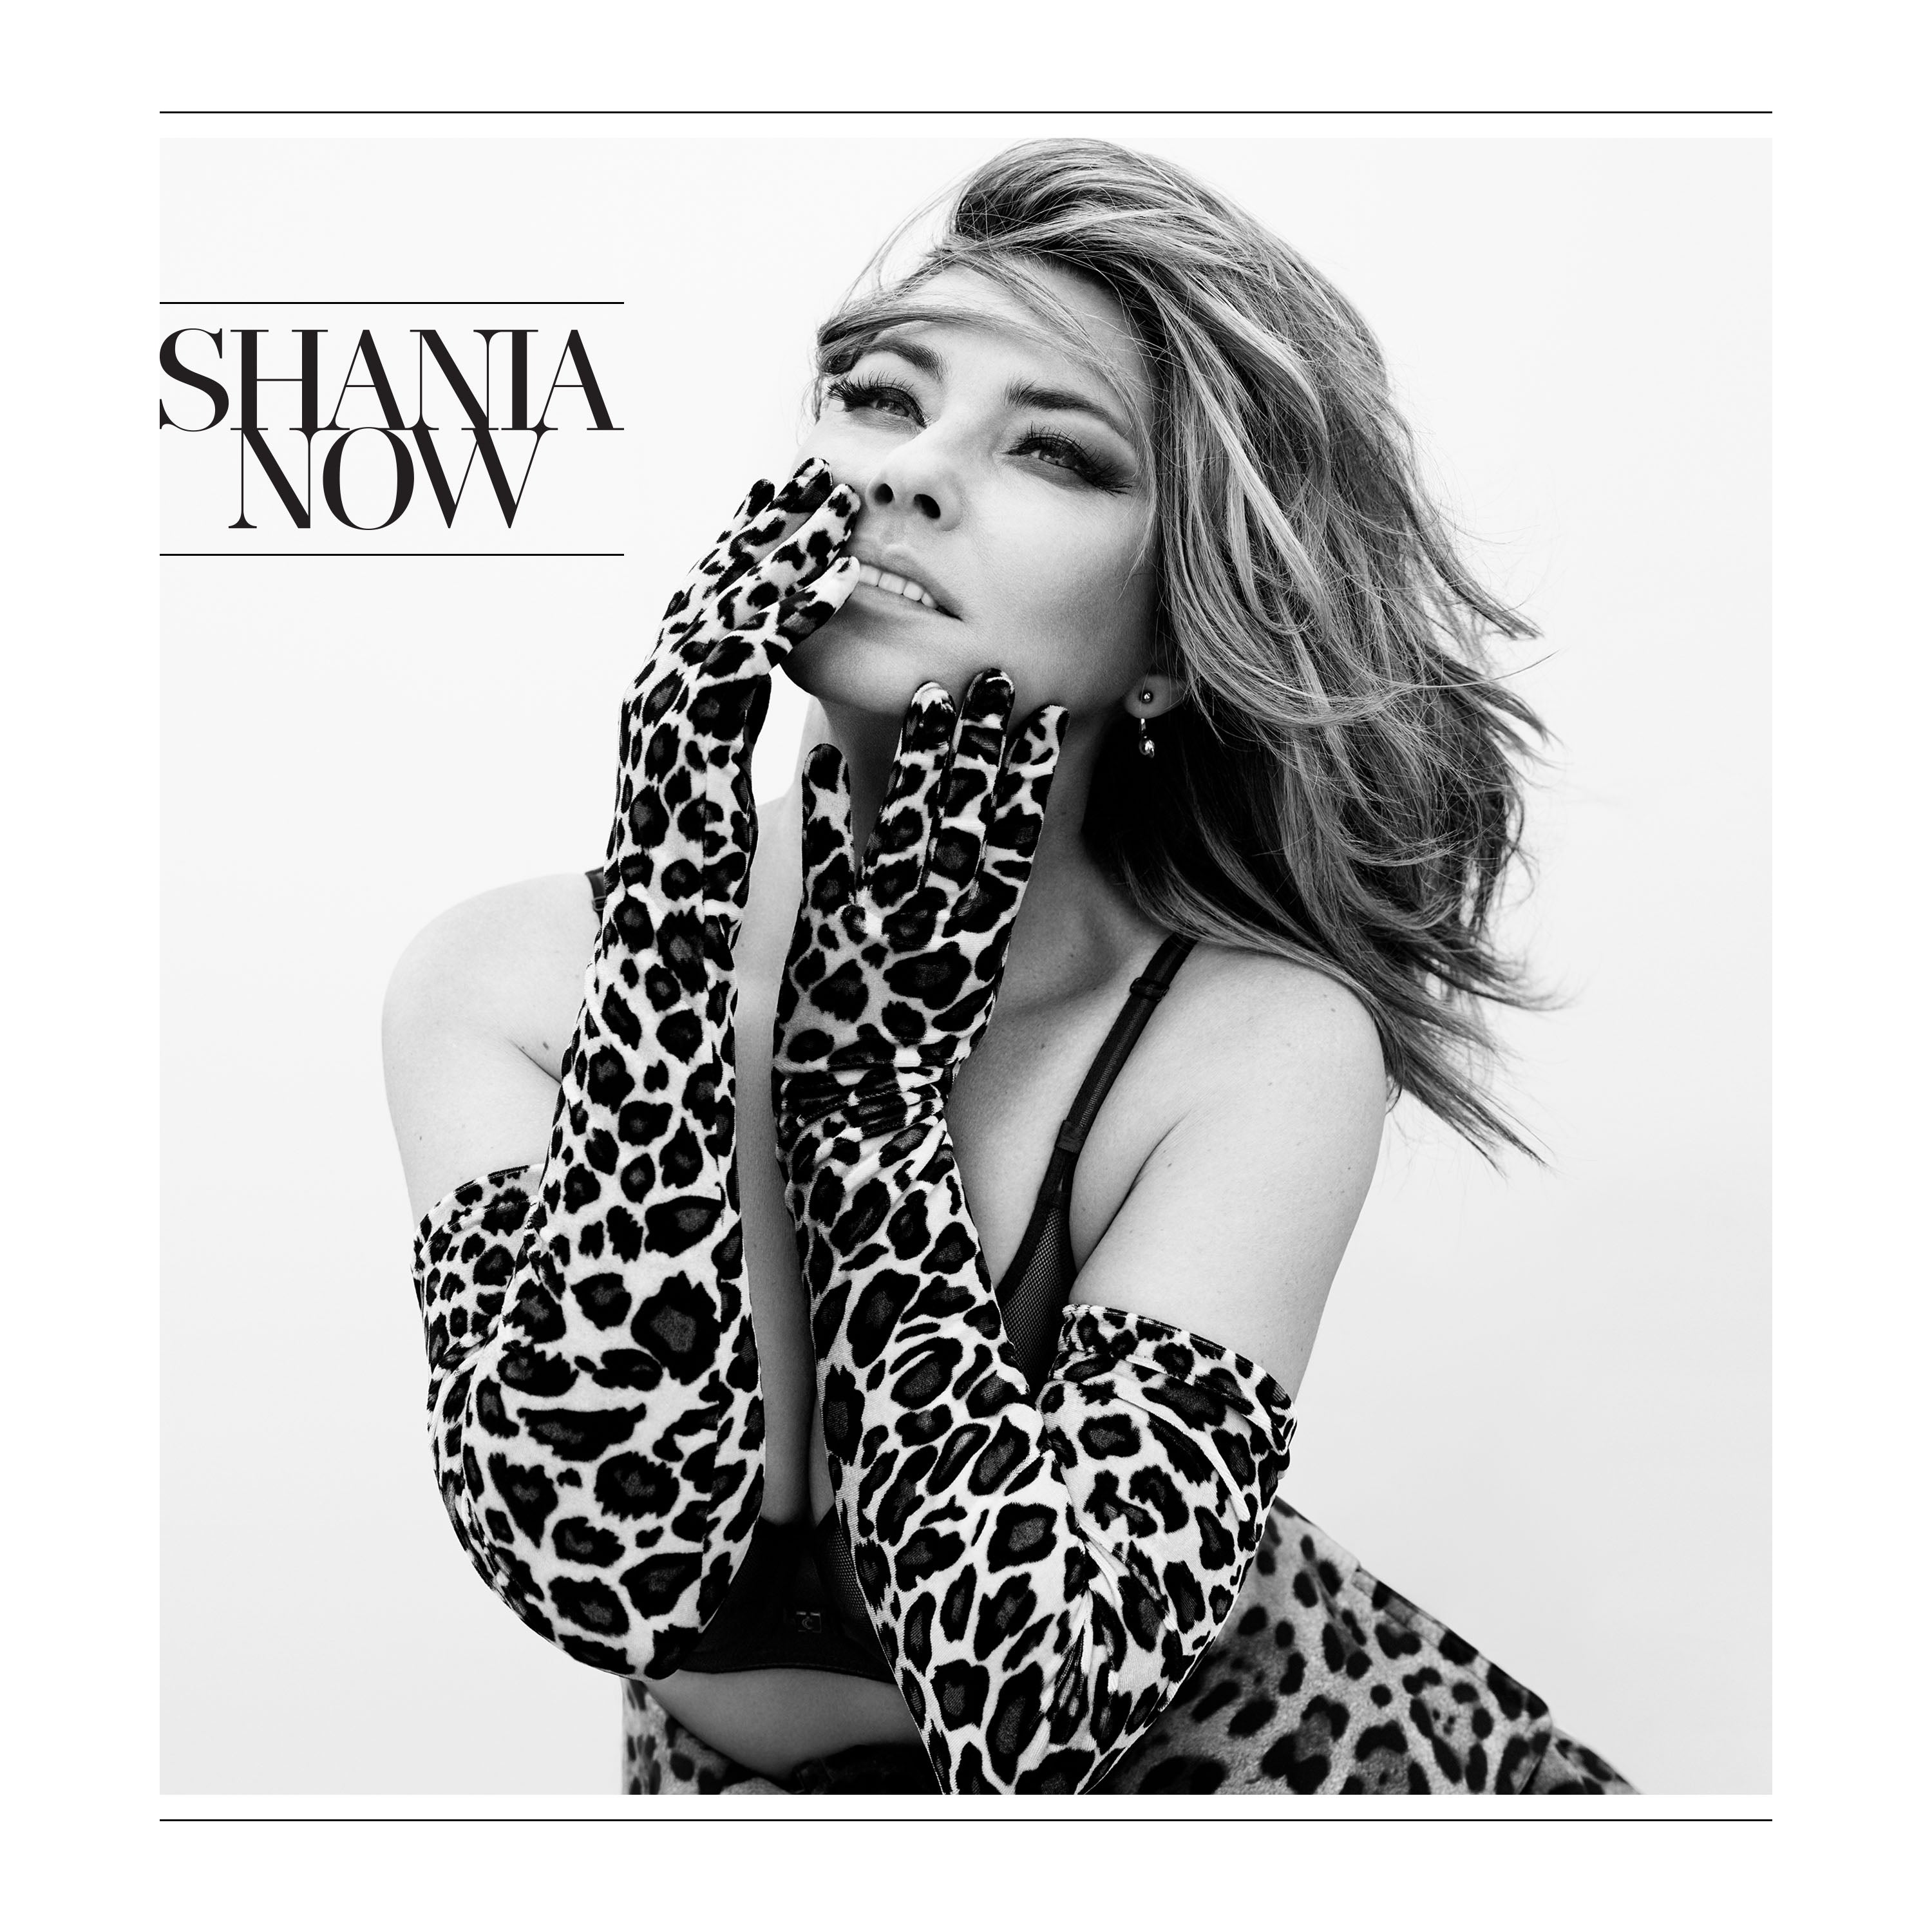 Shania Twain Is *So* Close To Scoring Her Second UK Number One Album!